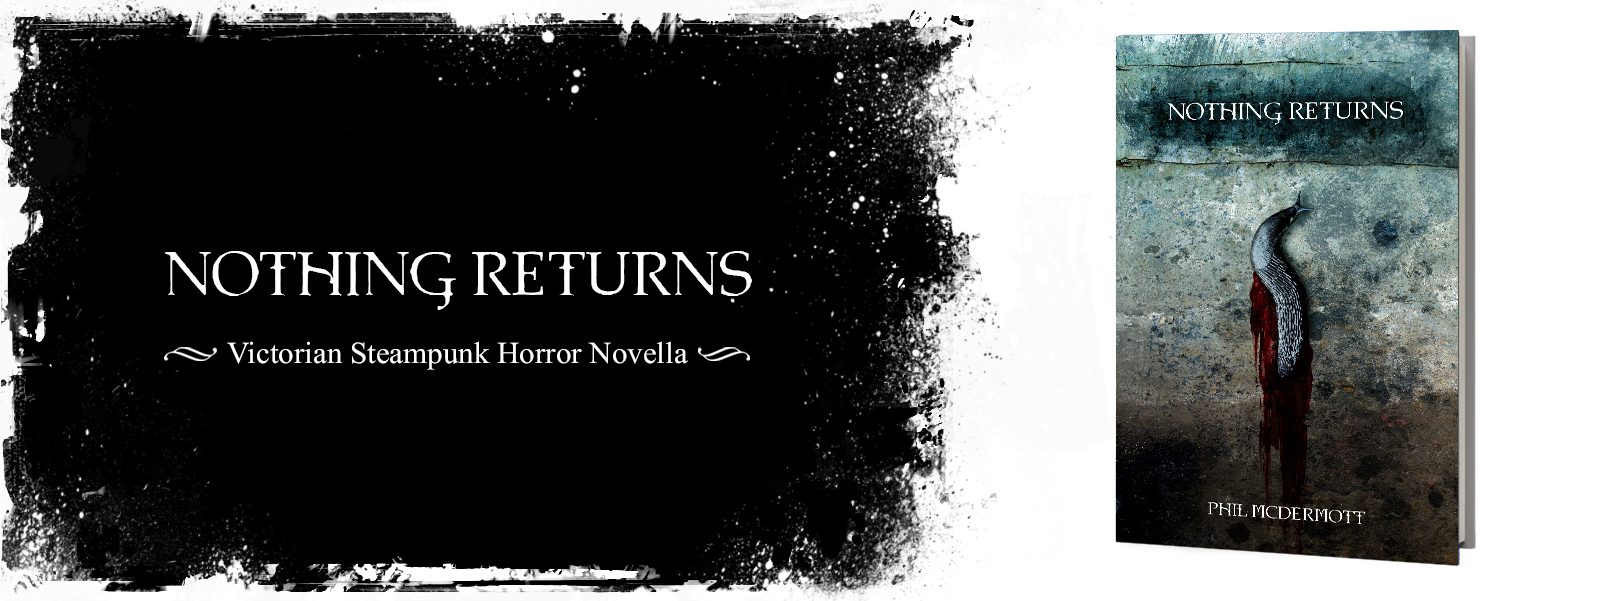 Nothing returns new cover banner.jpg